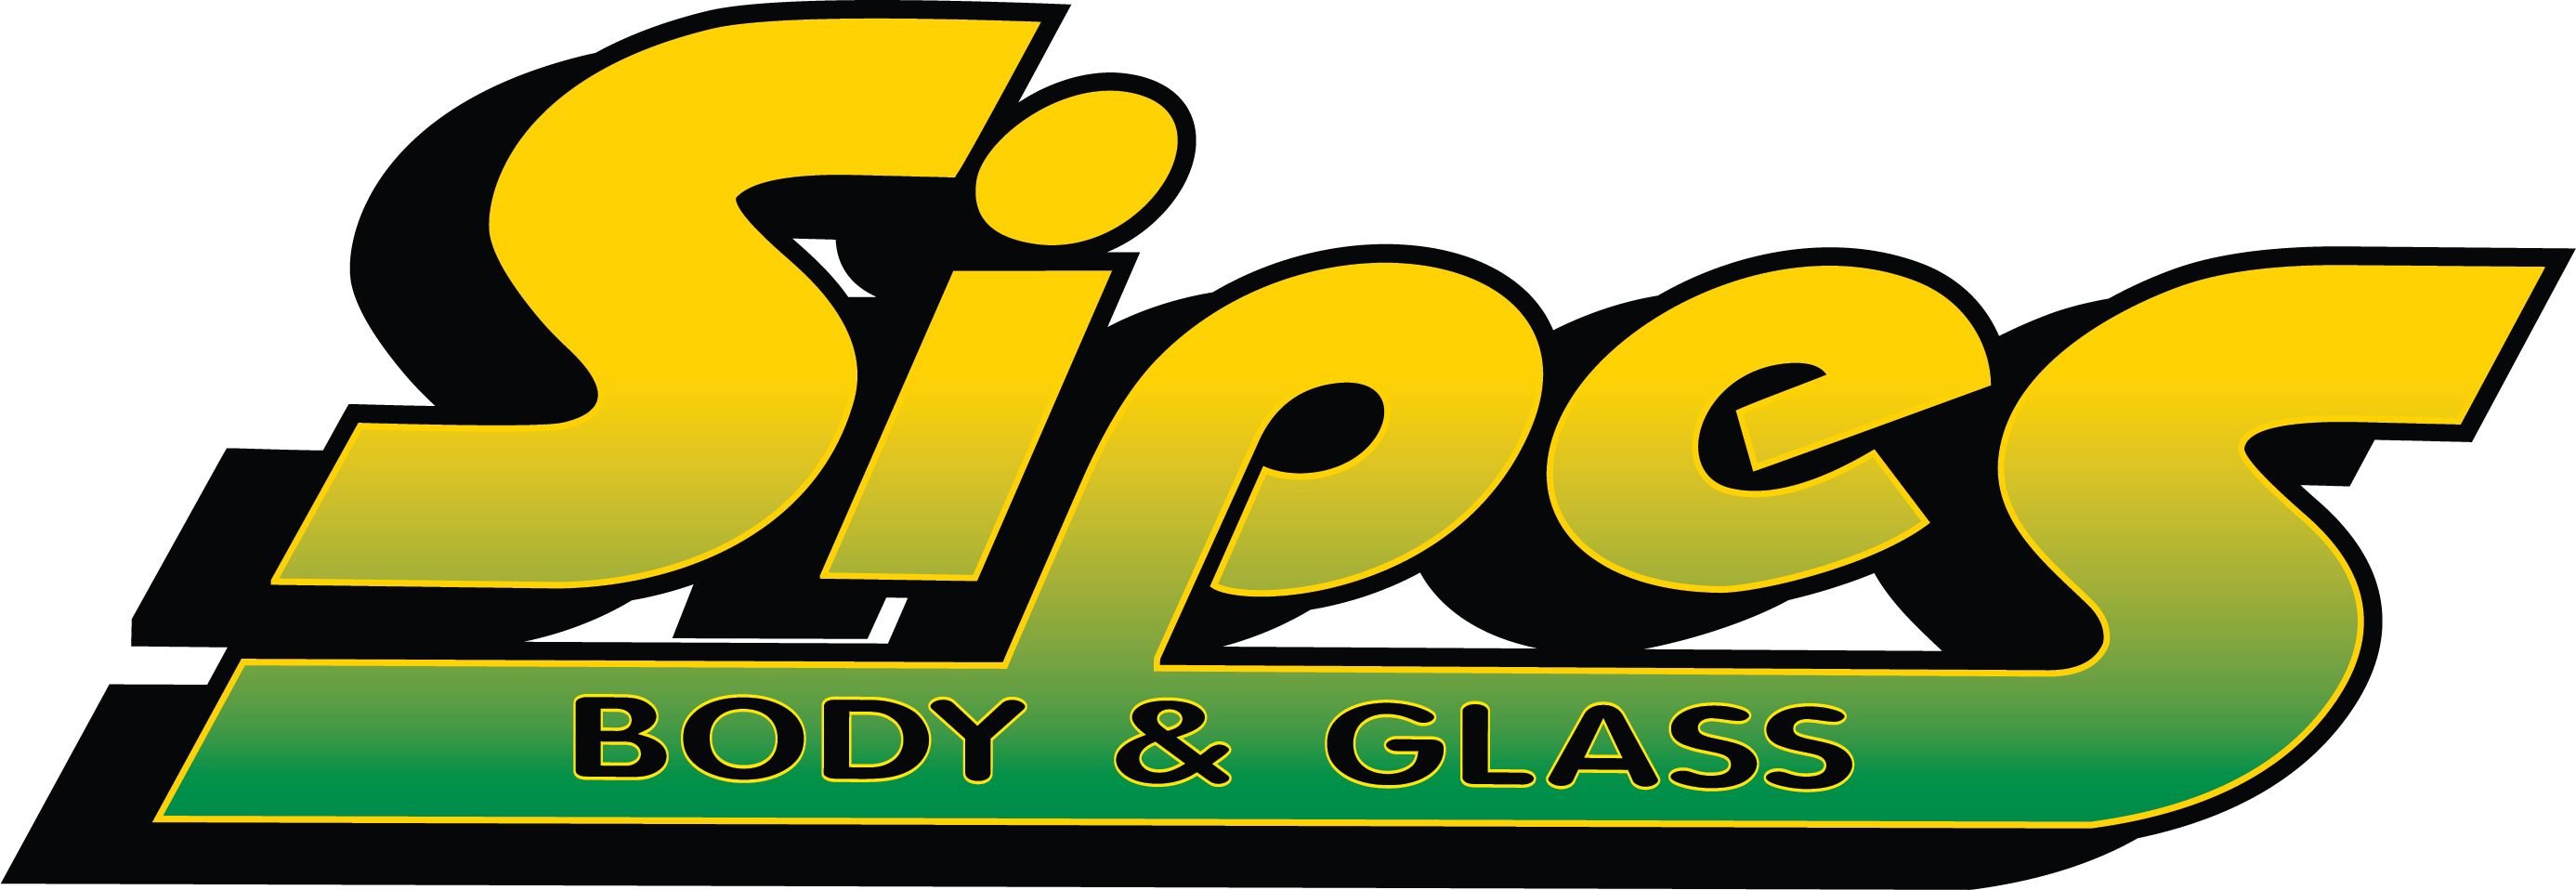 Sipes Body & Glass Inc.